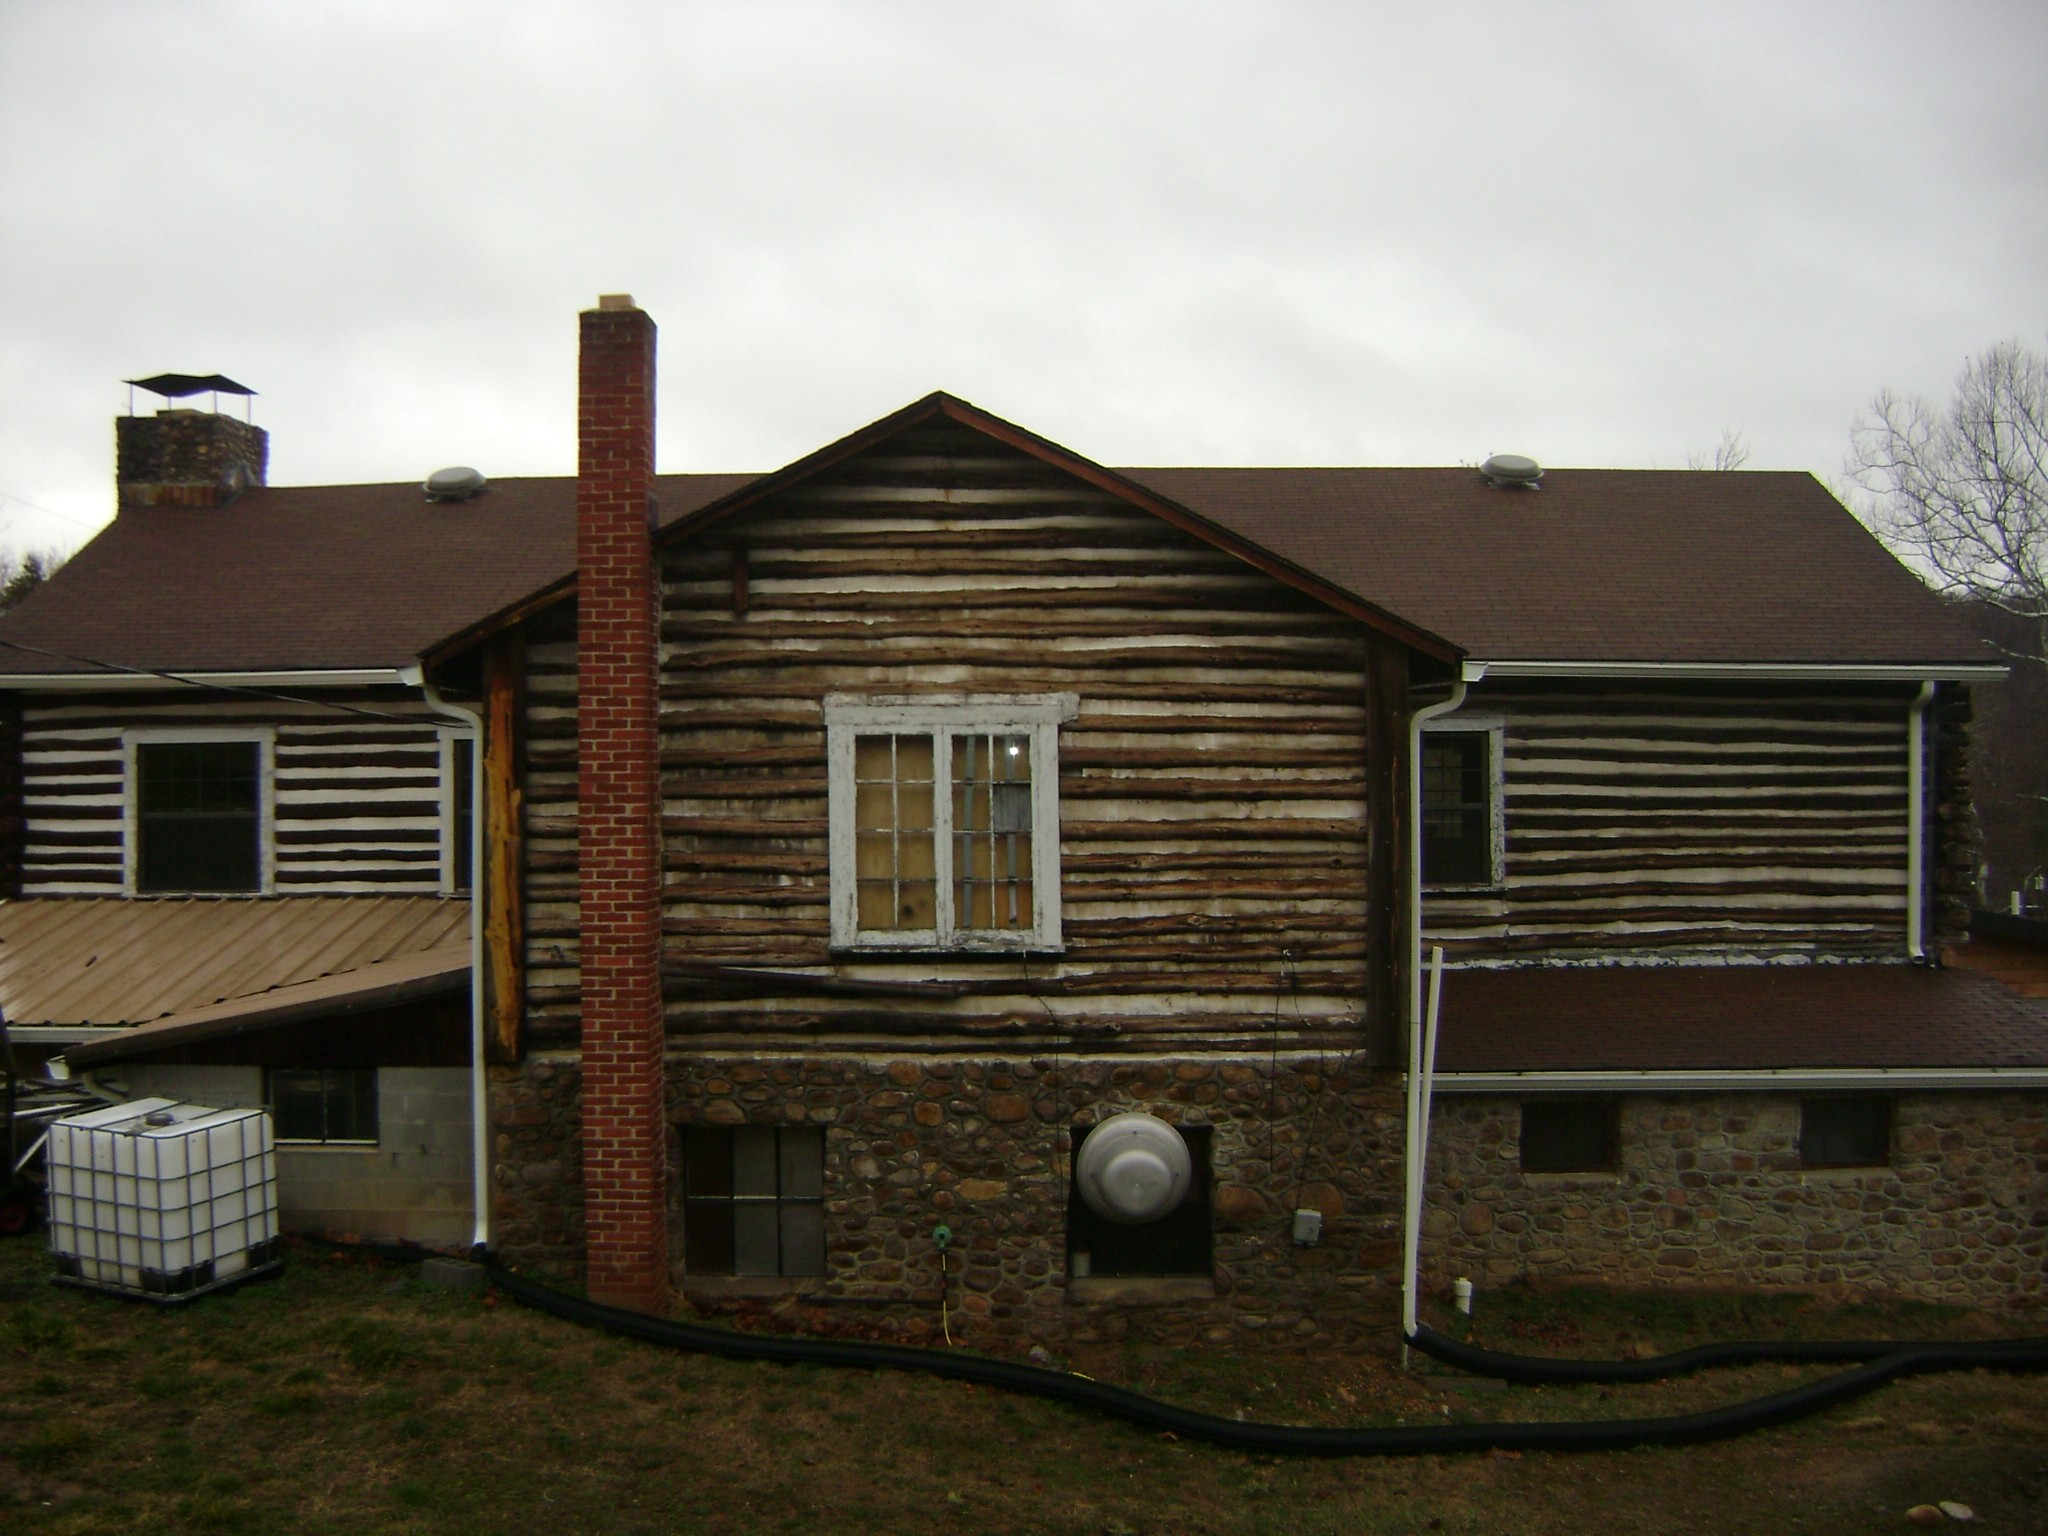 Log home project by Mt. Tabor Builders of Clear Spring, MD